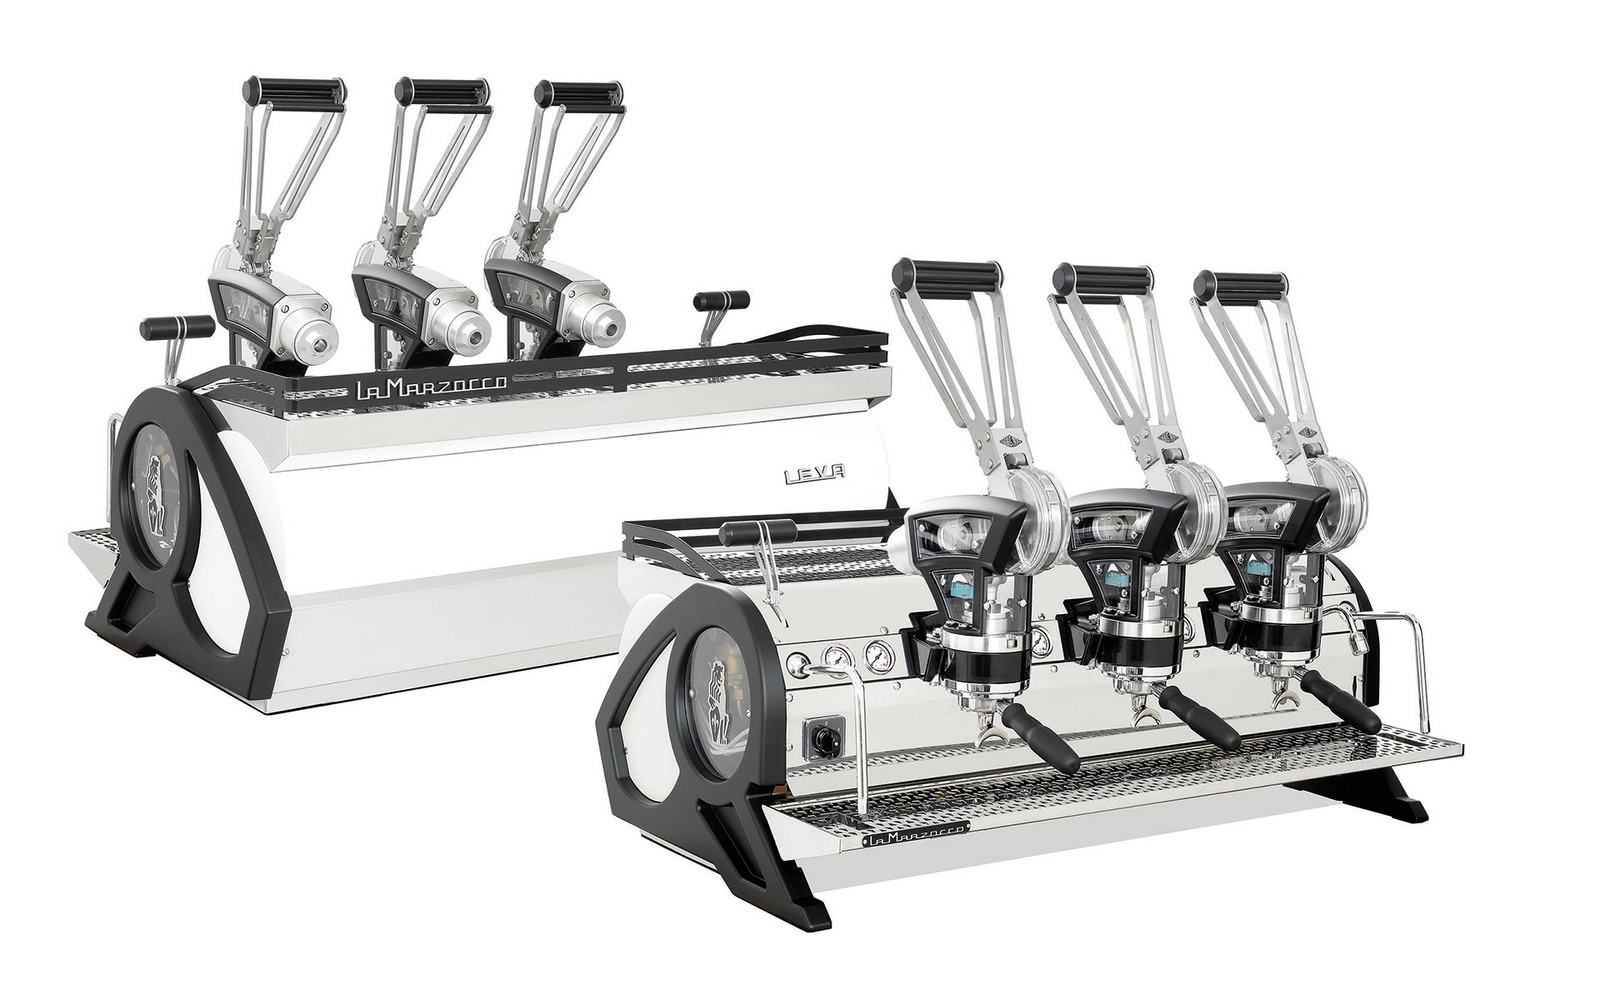 La Marzocco Leva S front and back view with 3 groups in stainless steel